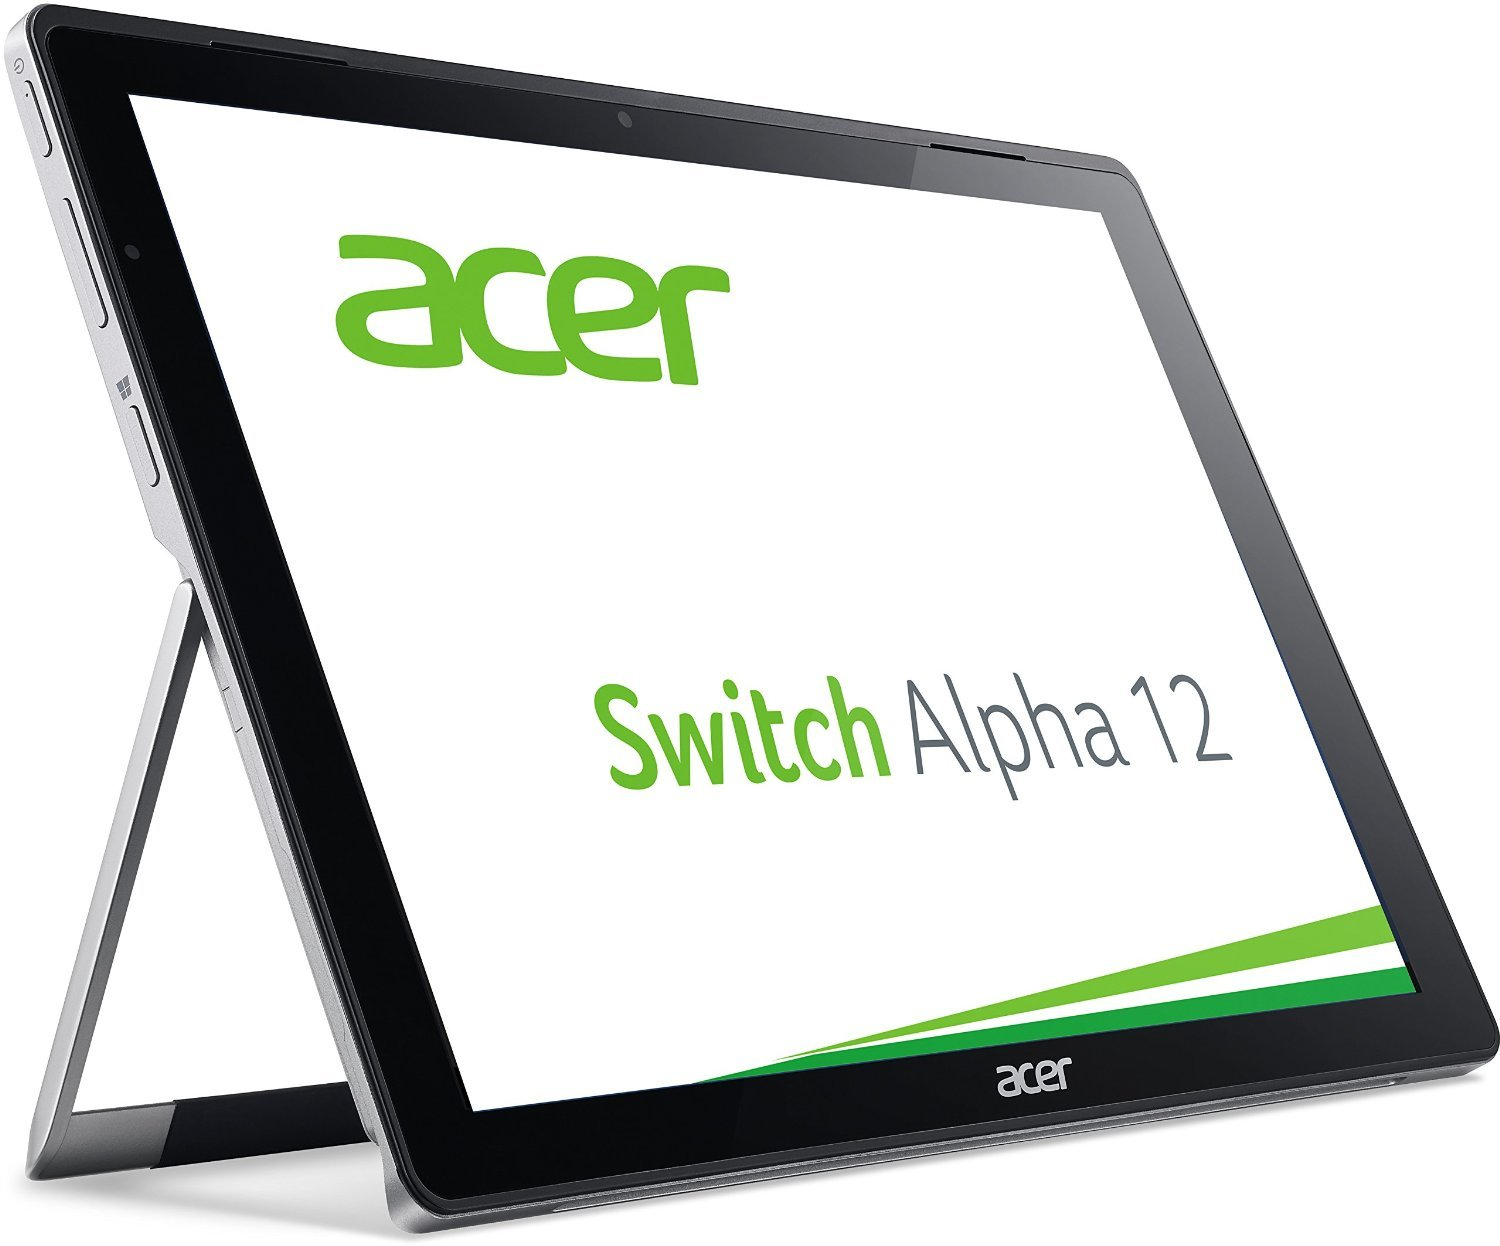 Test: Acer Aspire Switch Alpha 12